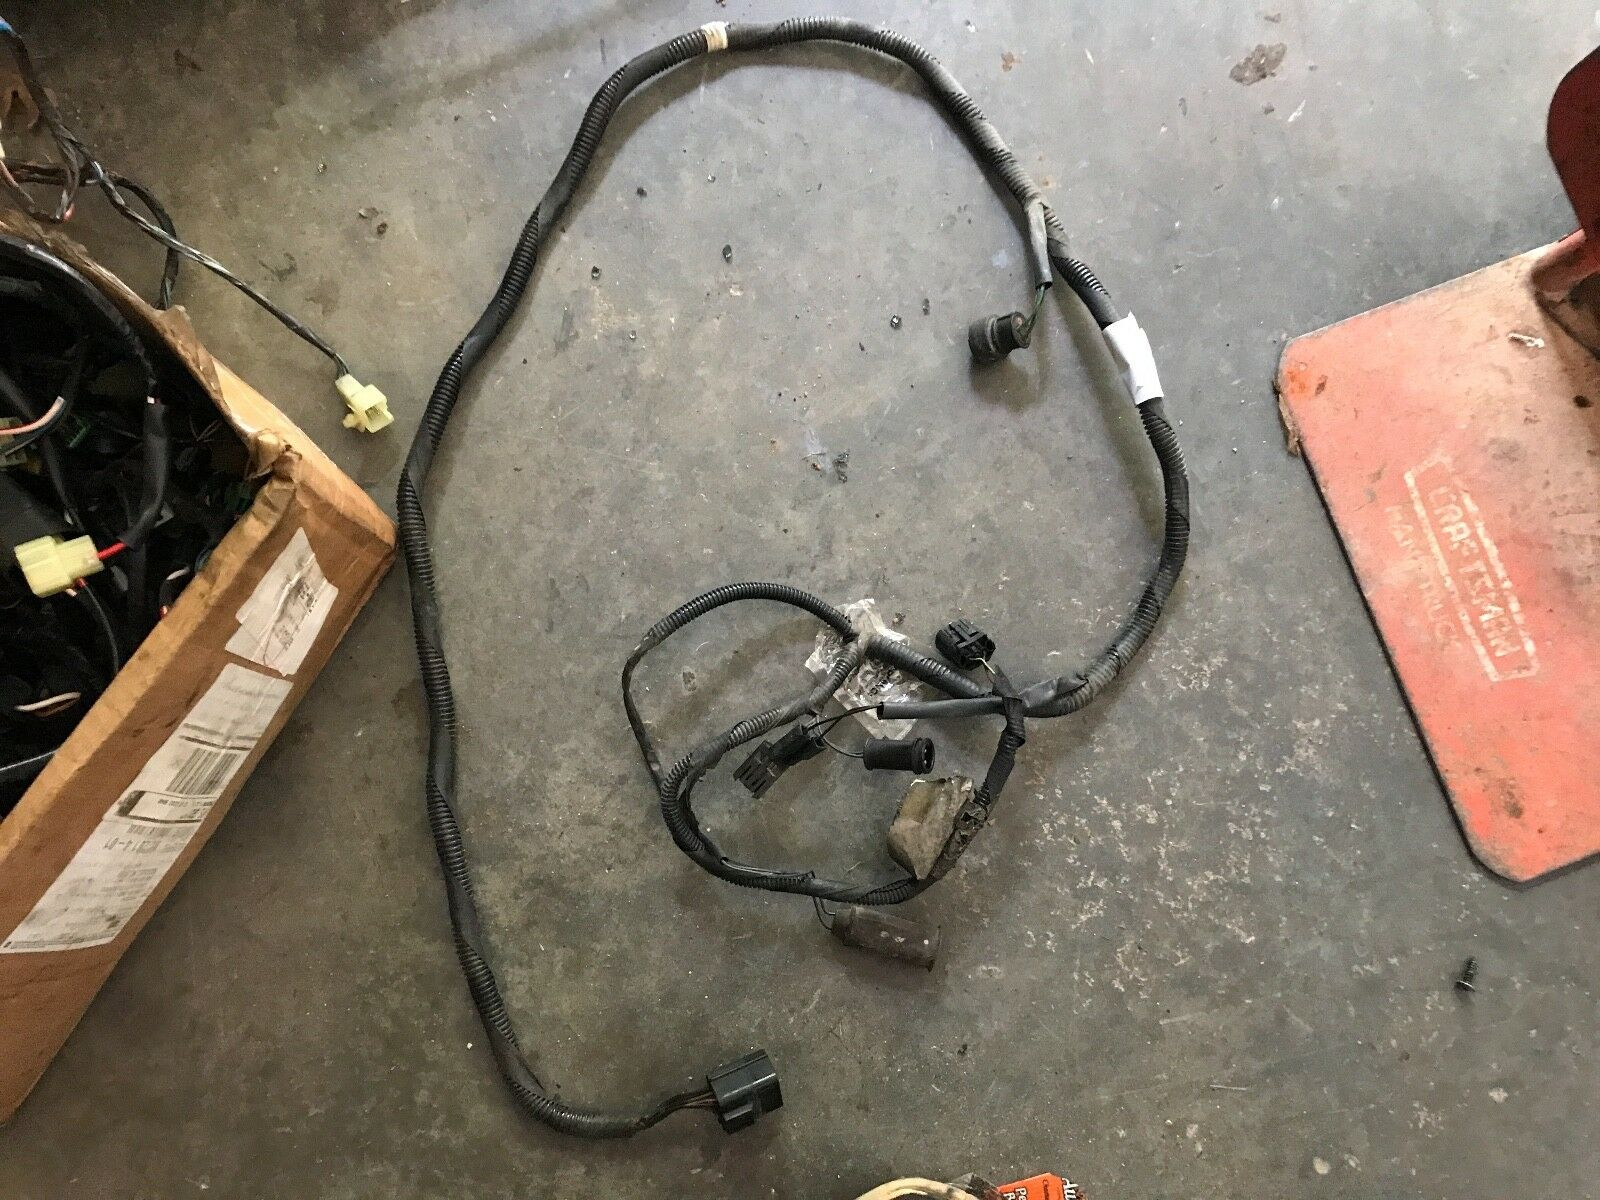 Land Rover Discovery 1 Wiring Harness Used Transmission Drivetrain And Related Parts For Sale 39 Transfer Case